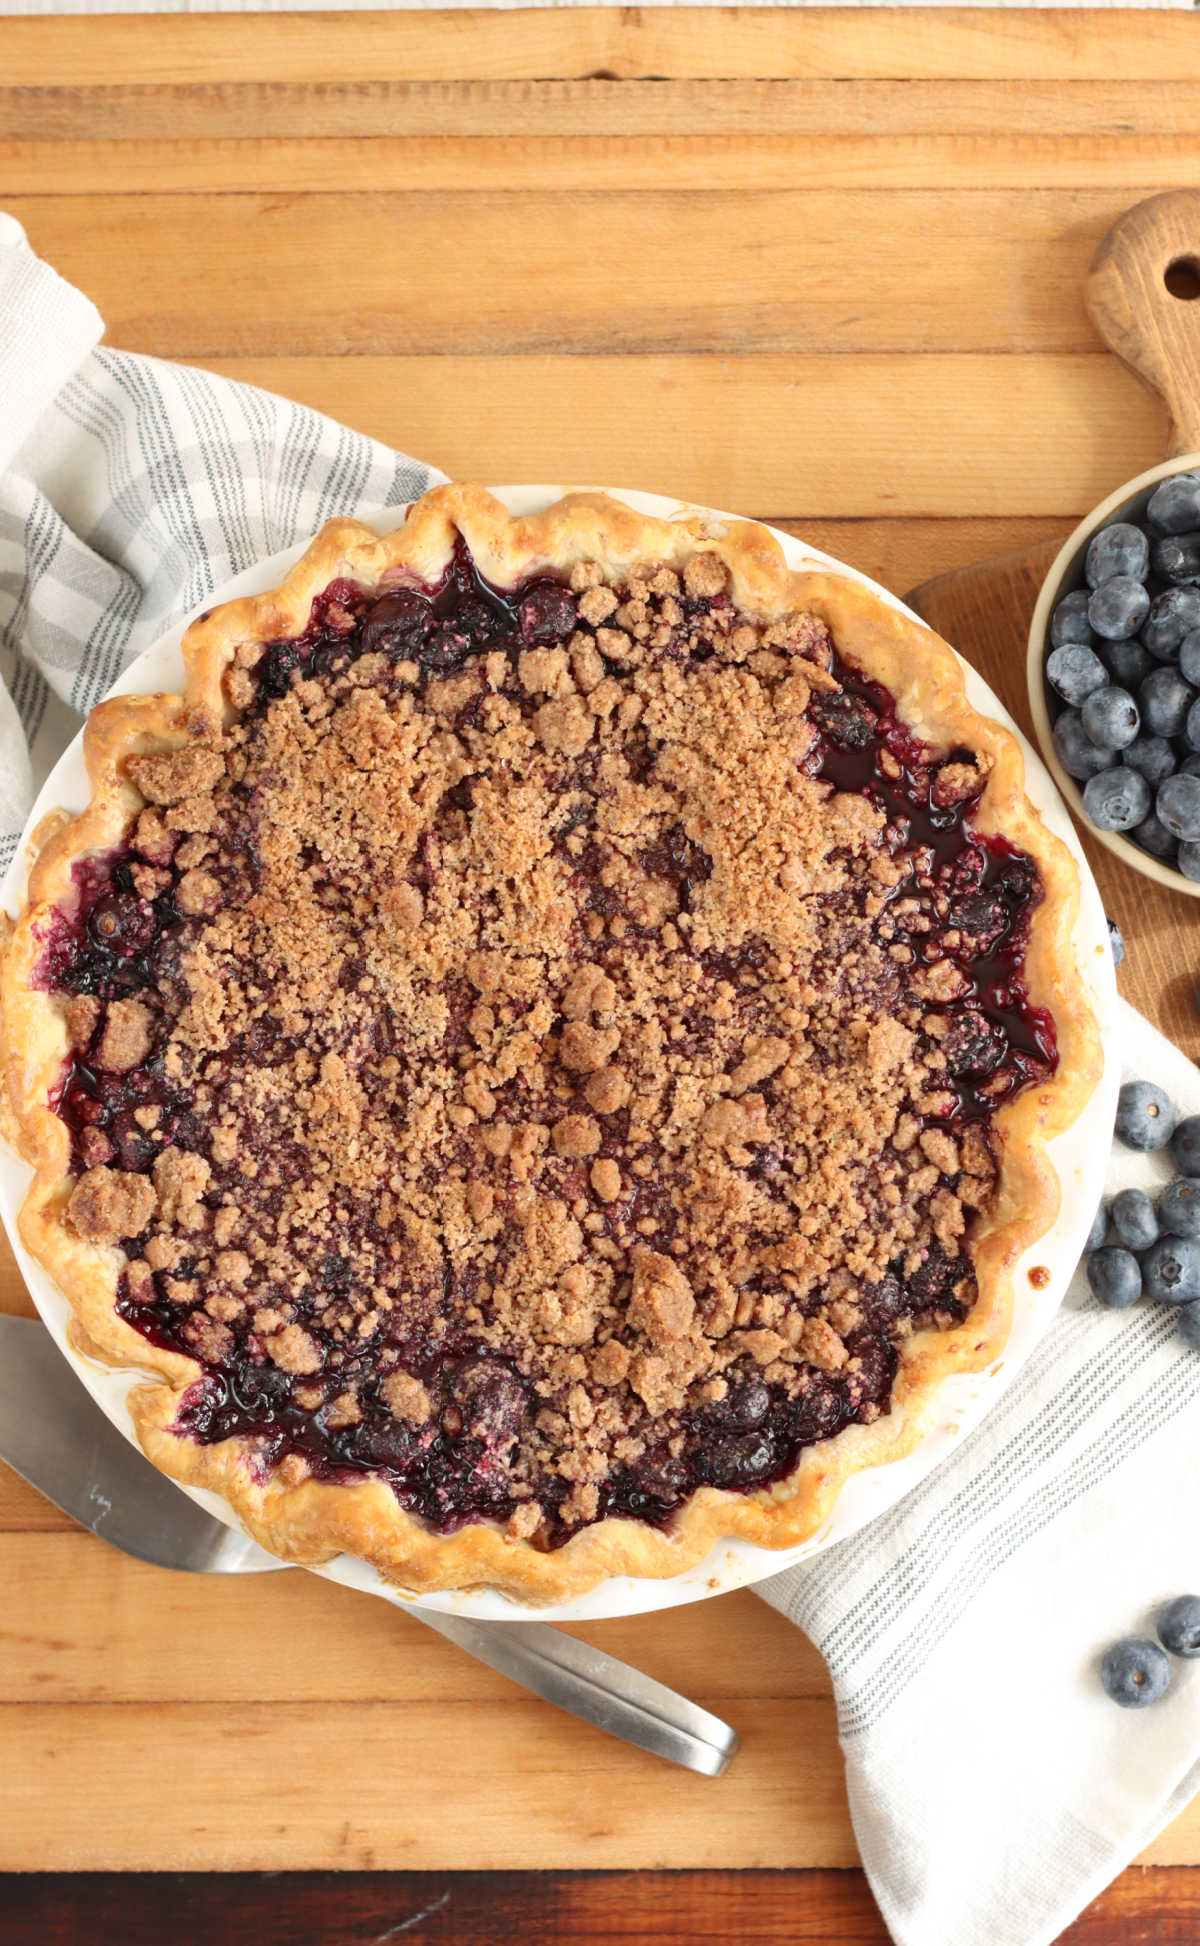 Blueberry pie crumble topping on butcher block, metal pie server and fresh blueberries.